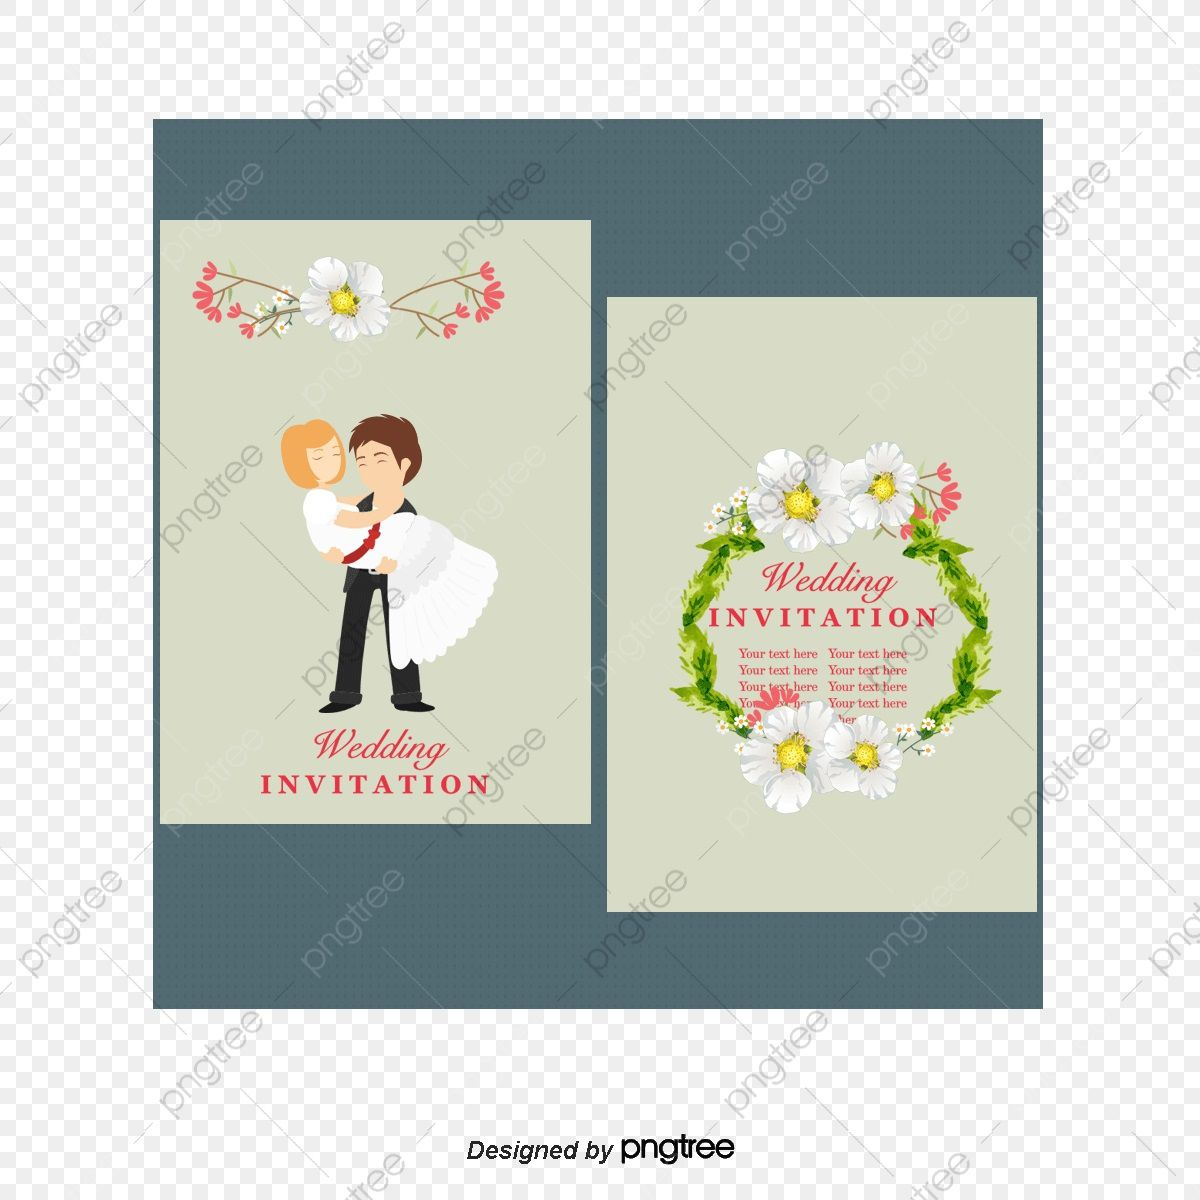 006 Marvelou Free Download Marriage Invitation Template Design  Card Psd After EffectFull